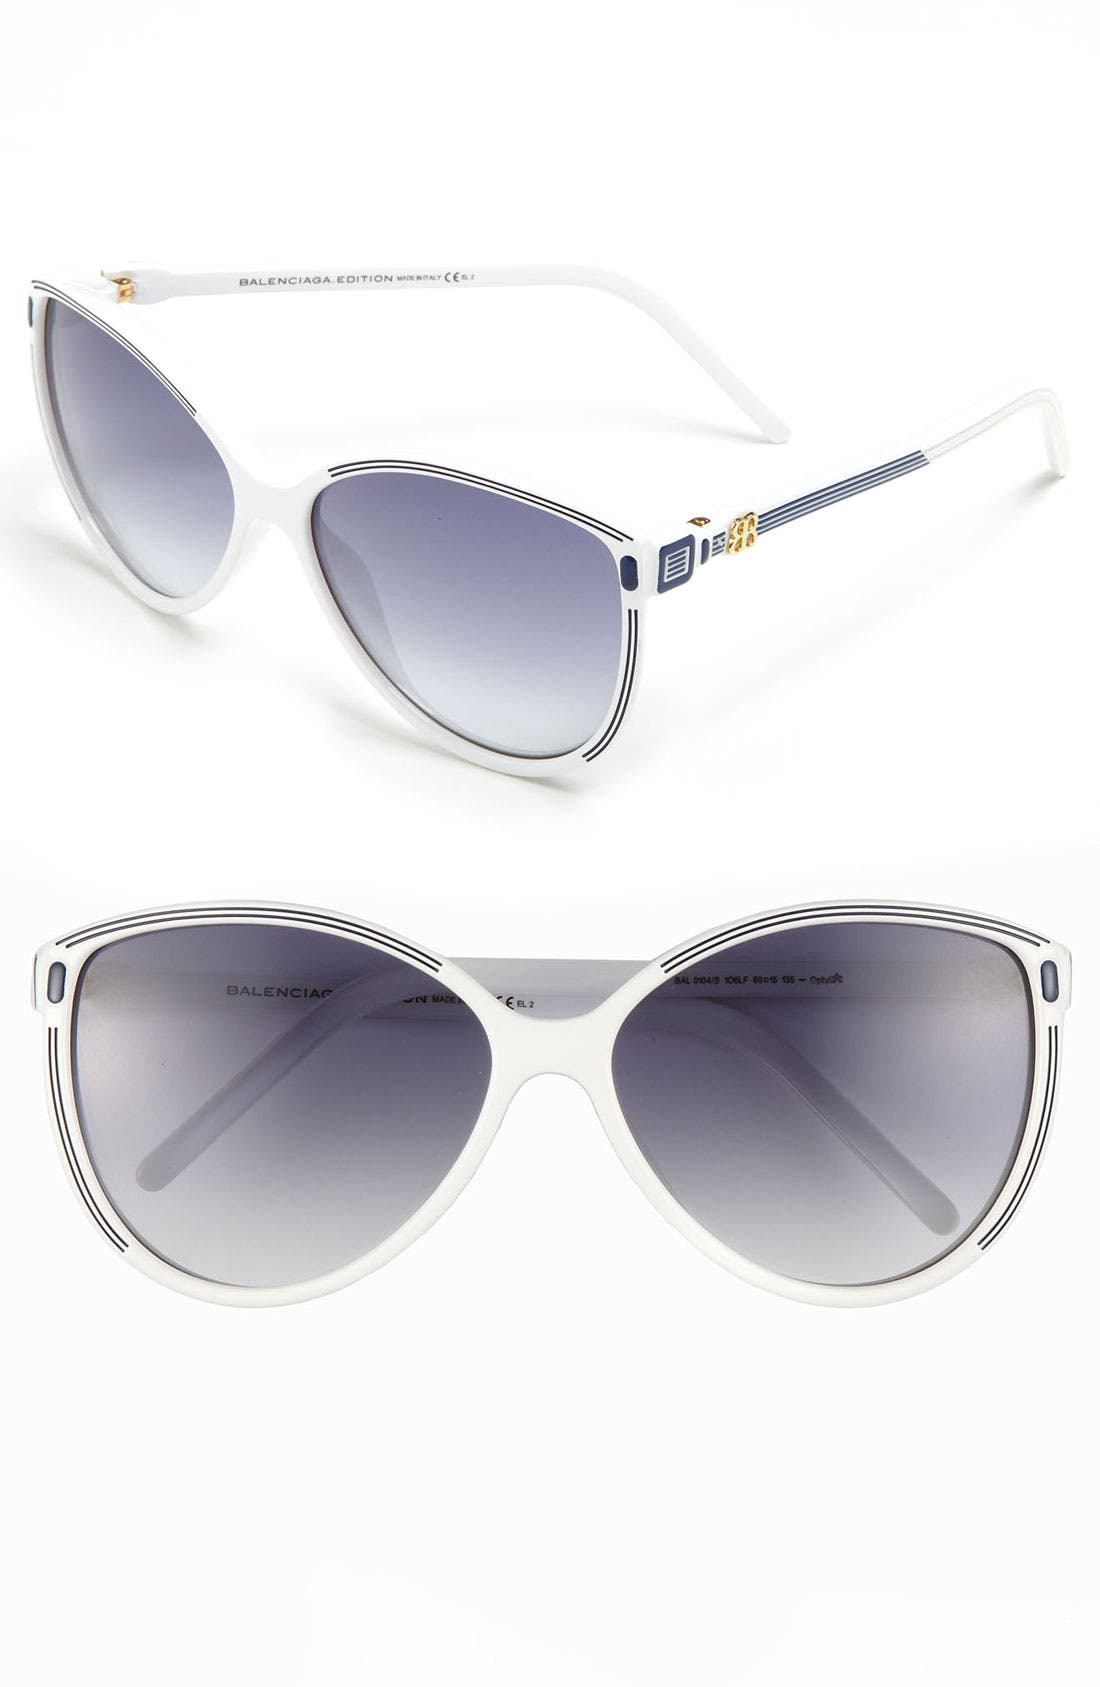 Main Image - Balenciaga Paris 60mm Sunglasses